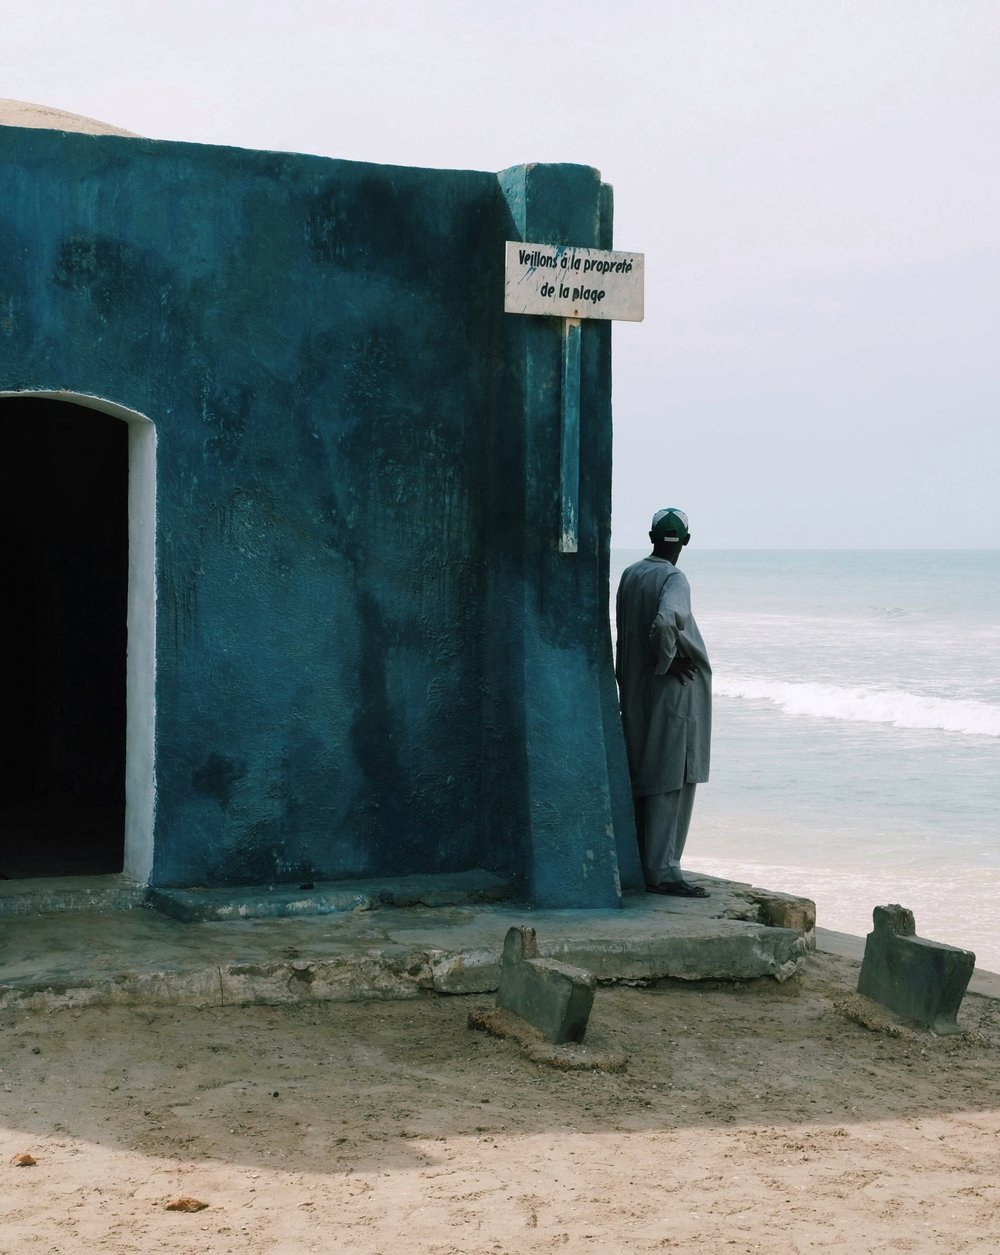 Saint-Louis erroding beach side in Senegal by Joost Bastmeijer.jpeg